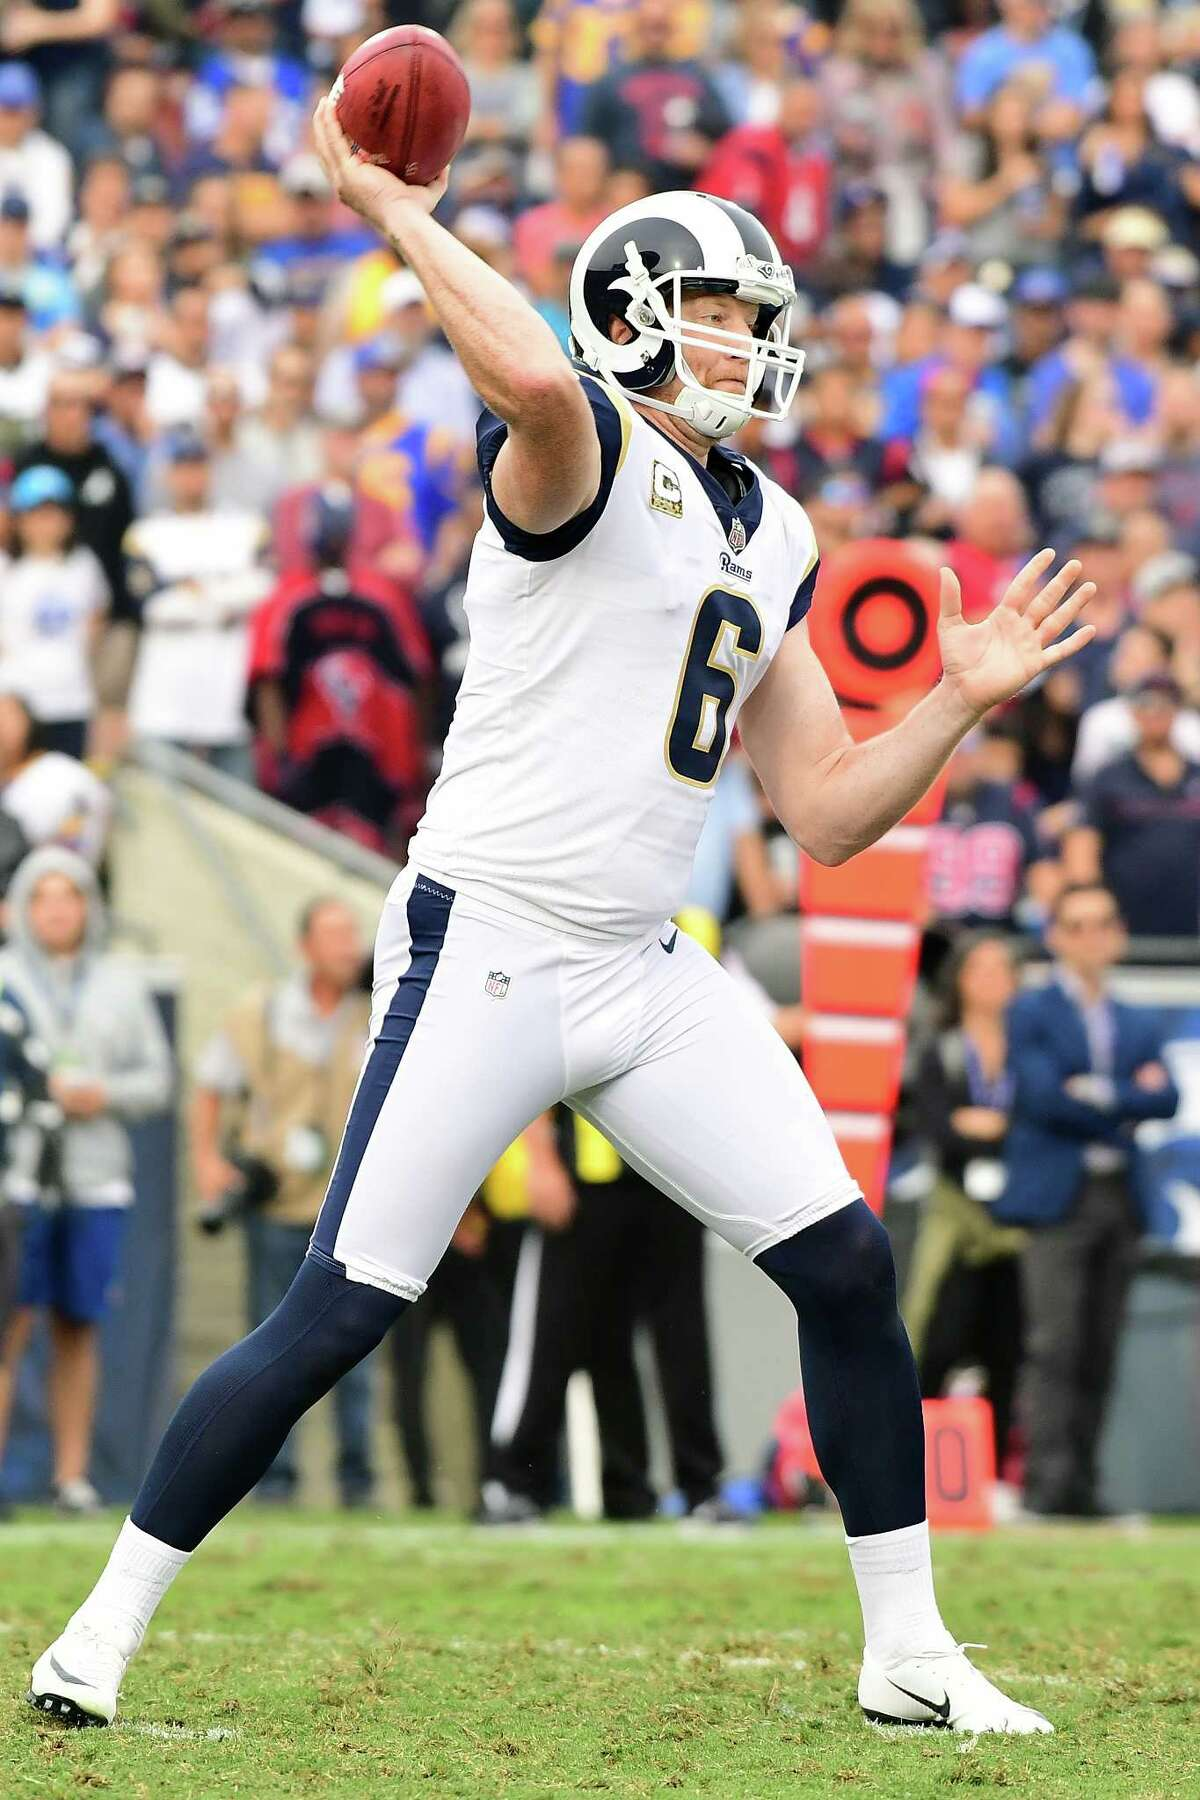 LOS ANGELES, CA - NOVEMBER 12: Johnny Hekker #6 of the Los Angeles Rams throws a pass on the fourth down during the game against the Houston Texans at the Los Angeles Memorial Coliseum on November 12, 2017 in Los Angeles, California. (Photo by Harry How/Getty Images) ORG XMIT: 700070738